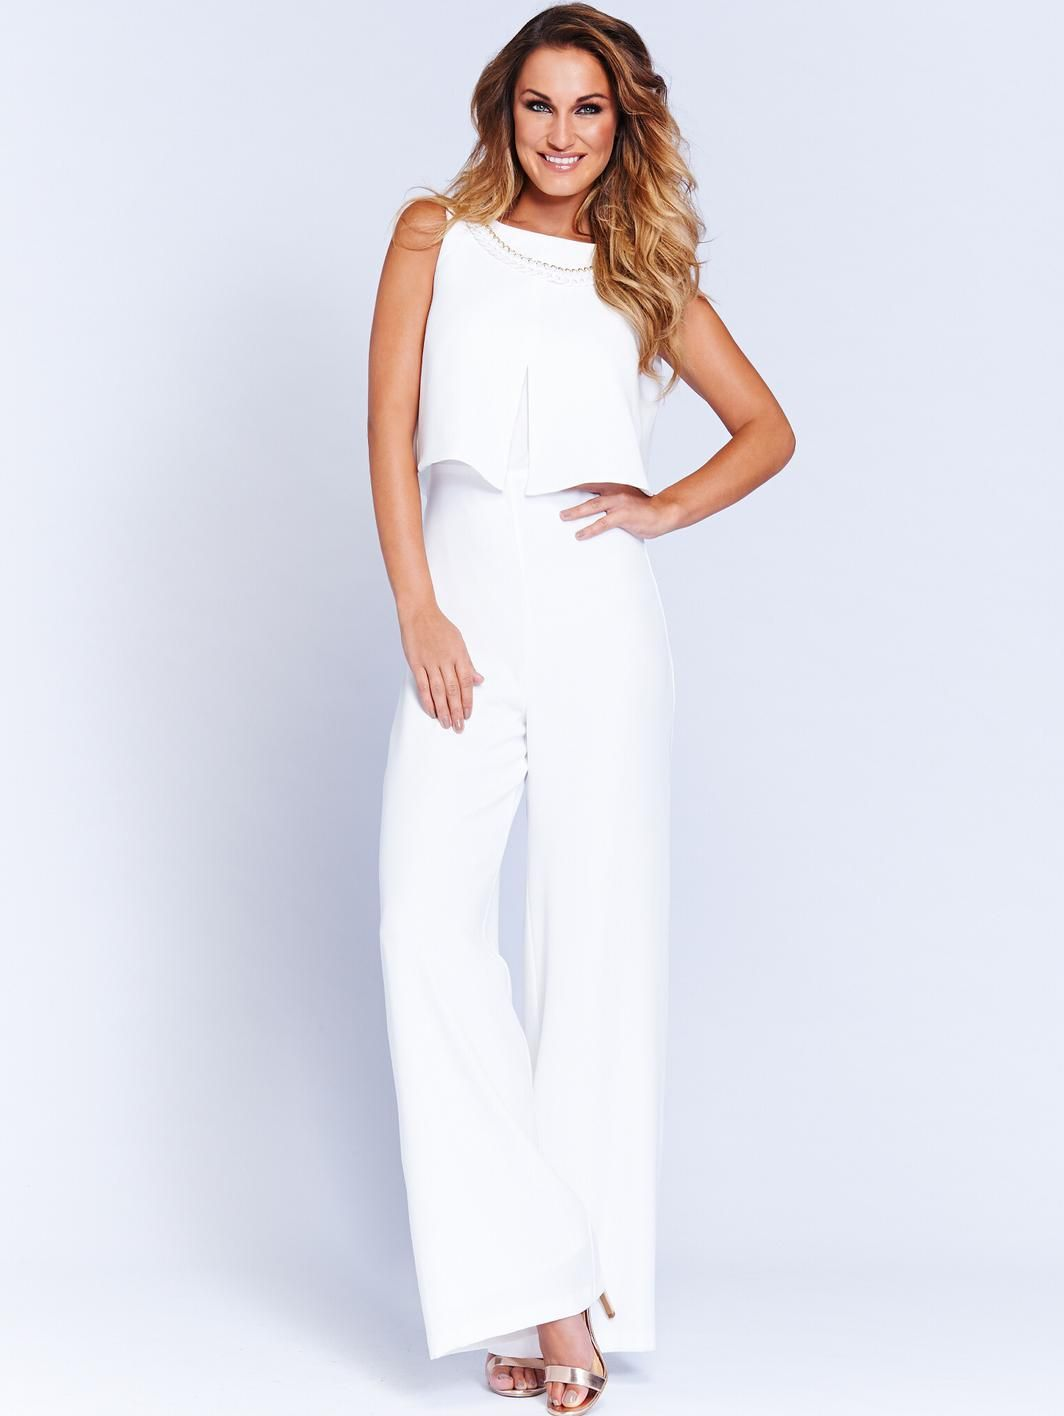 a65ebbfda81 White Sam Faiers Jumpsuit - simple